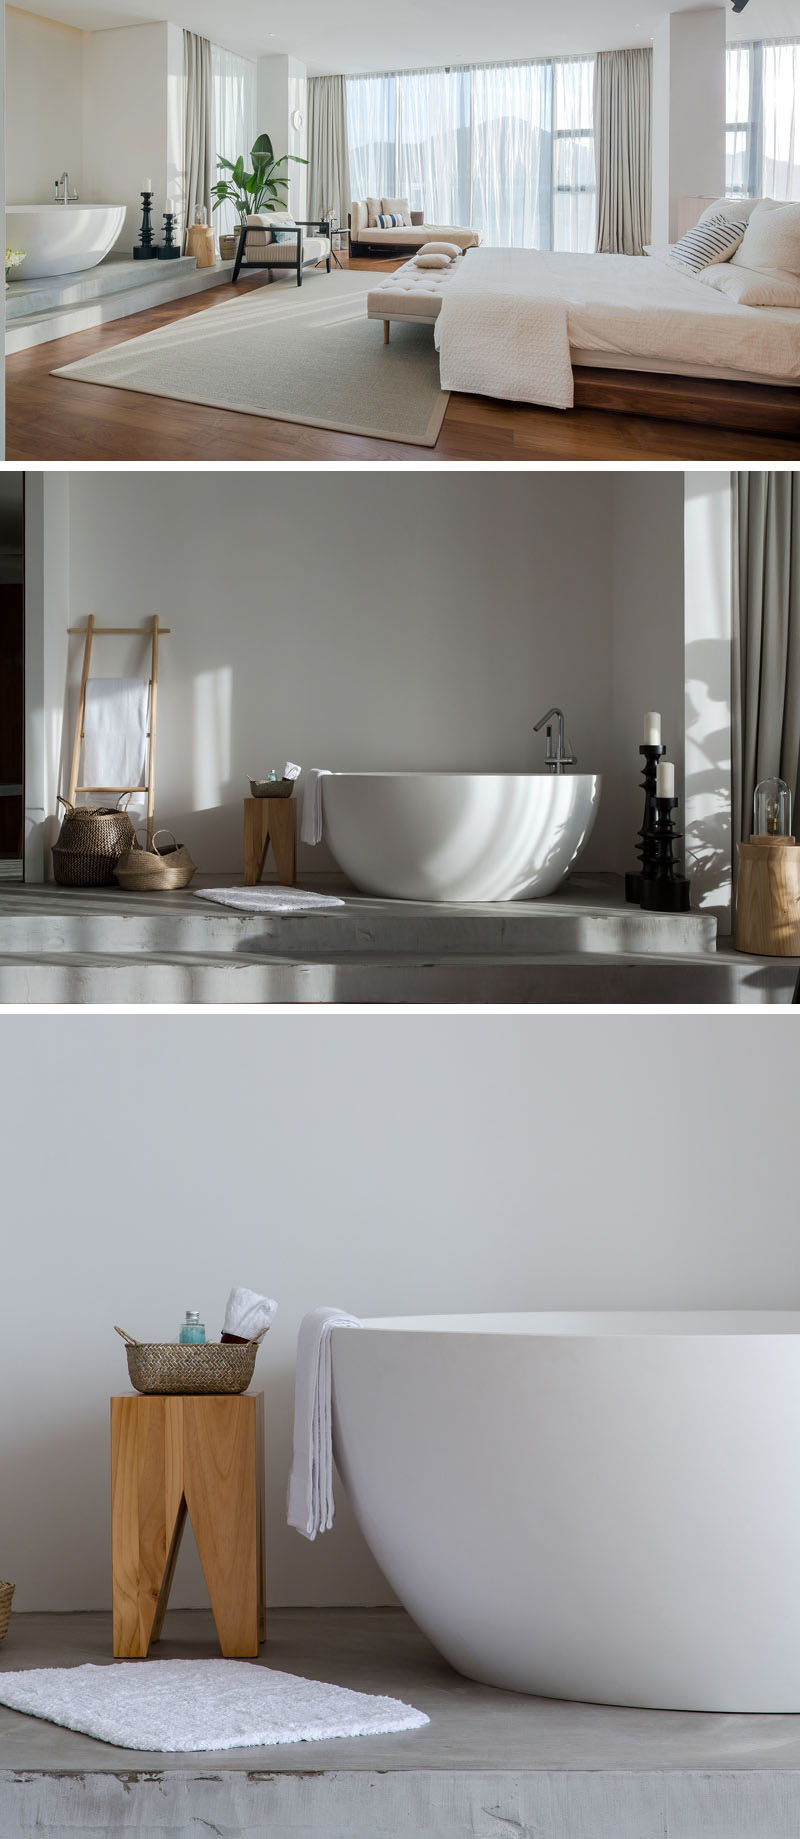 This modern apartment has a bath area with a freestanding deep soaking bathtub that's slightly raised up from the main floor and is defined by a concrete floor. #ModernBathroom #OpenBathroom #FreestandingBathtub